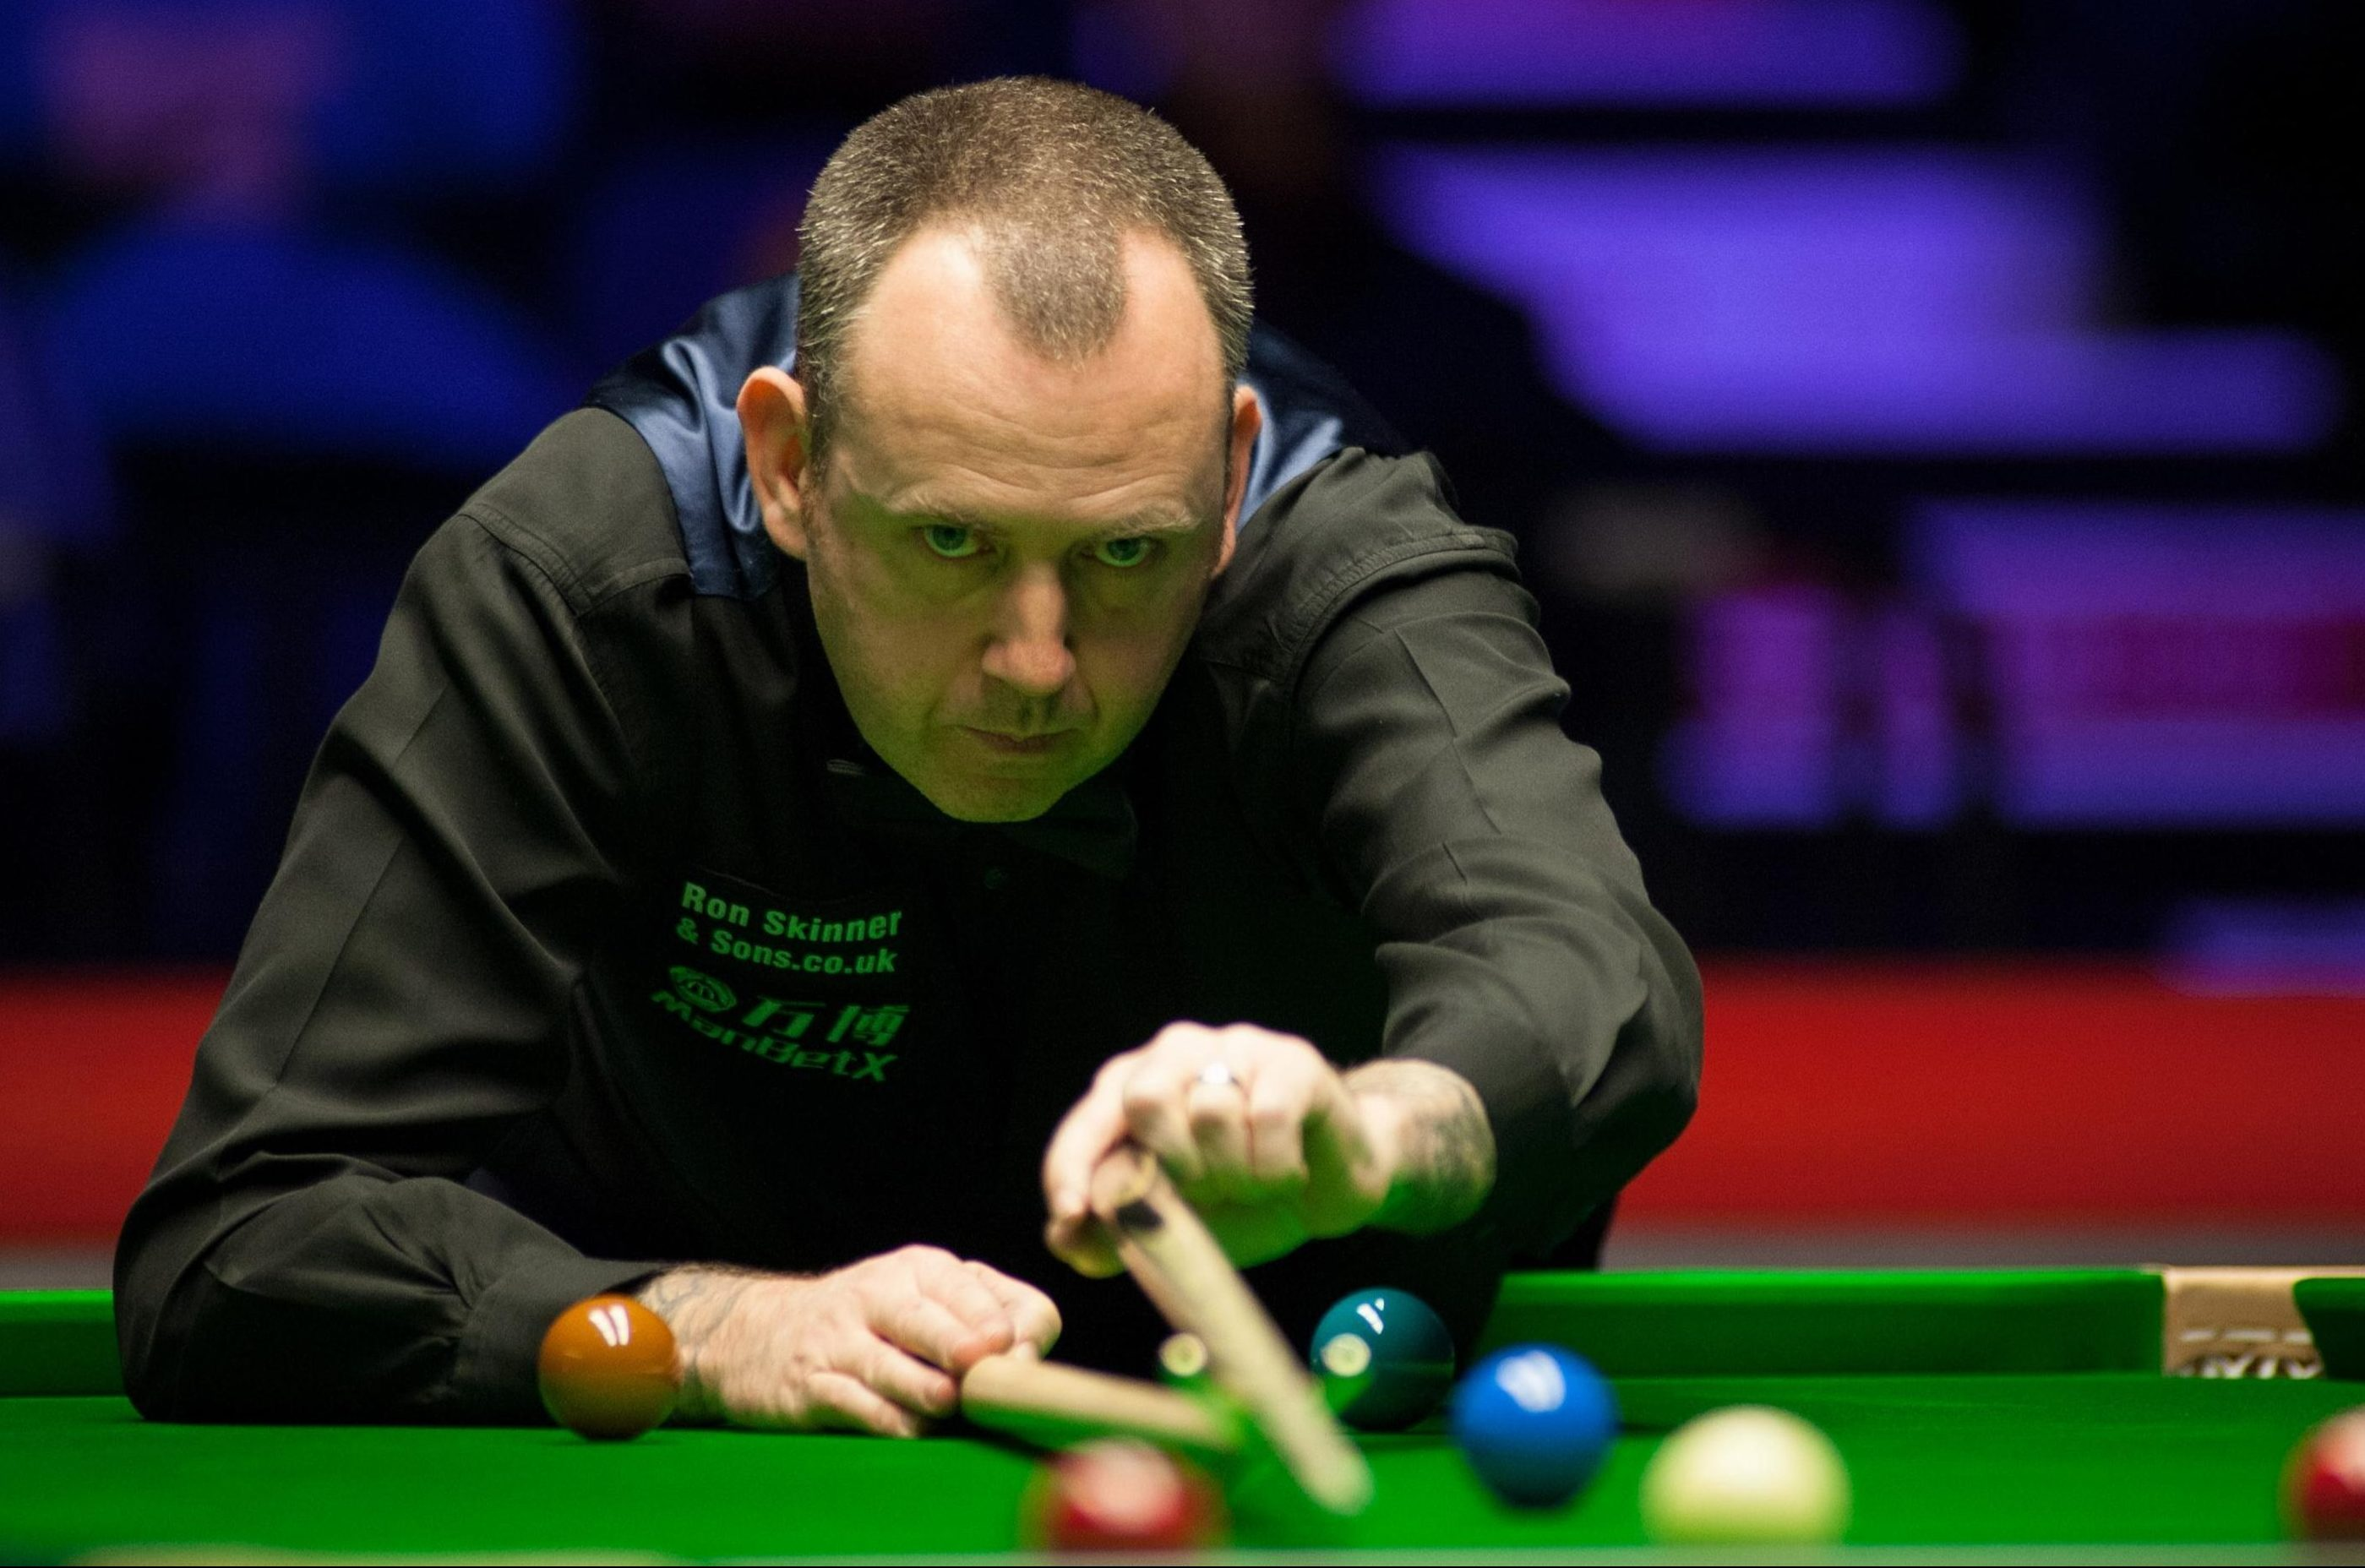 Welshman Mark Williams says he knew he was in for a long frame - with what he rated was only a million-to-one chance of winning it